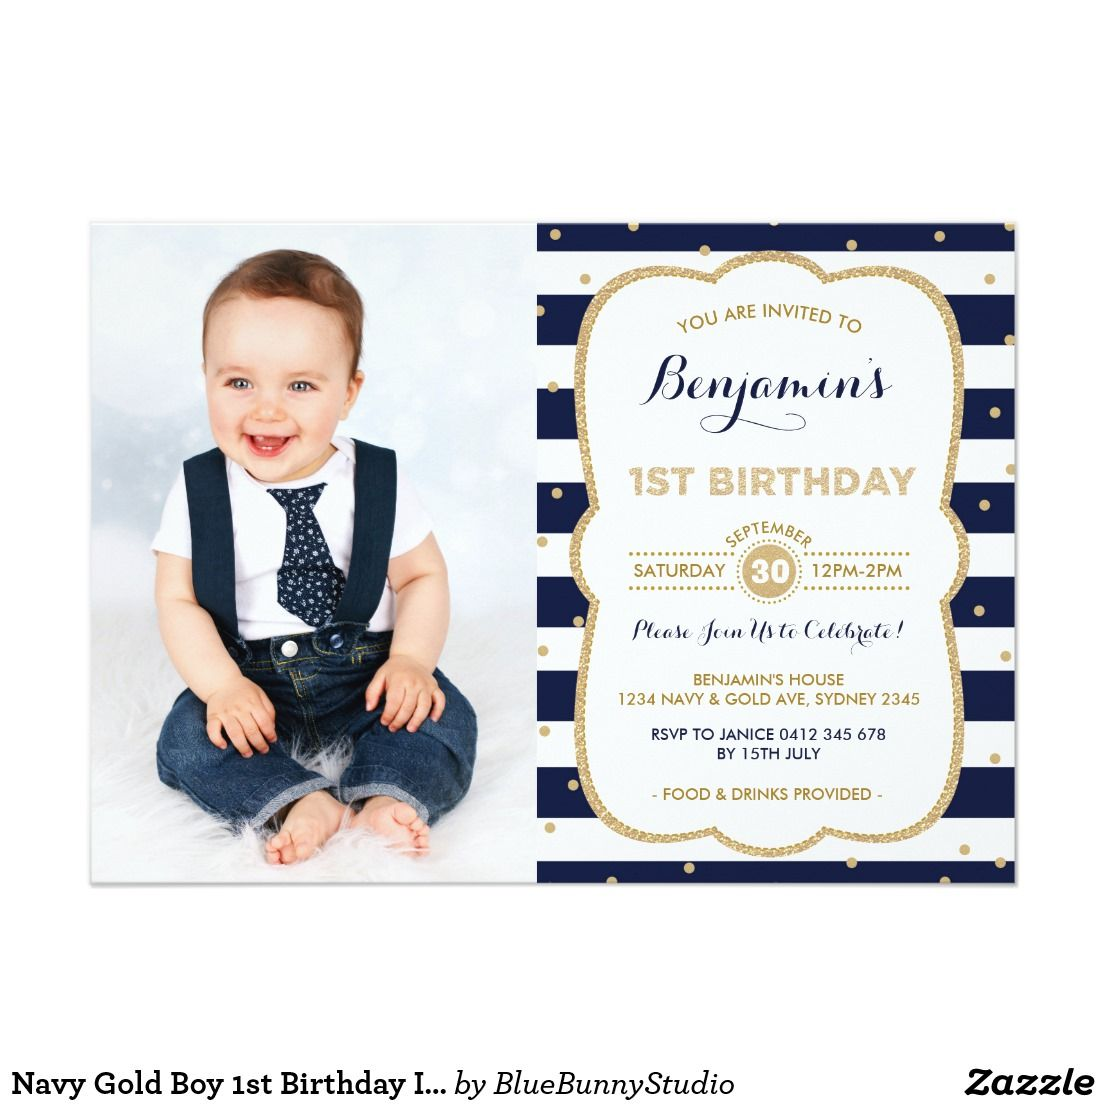 Navy Gold Boy 1st Birthday Invitation Prince Party | Children ...